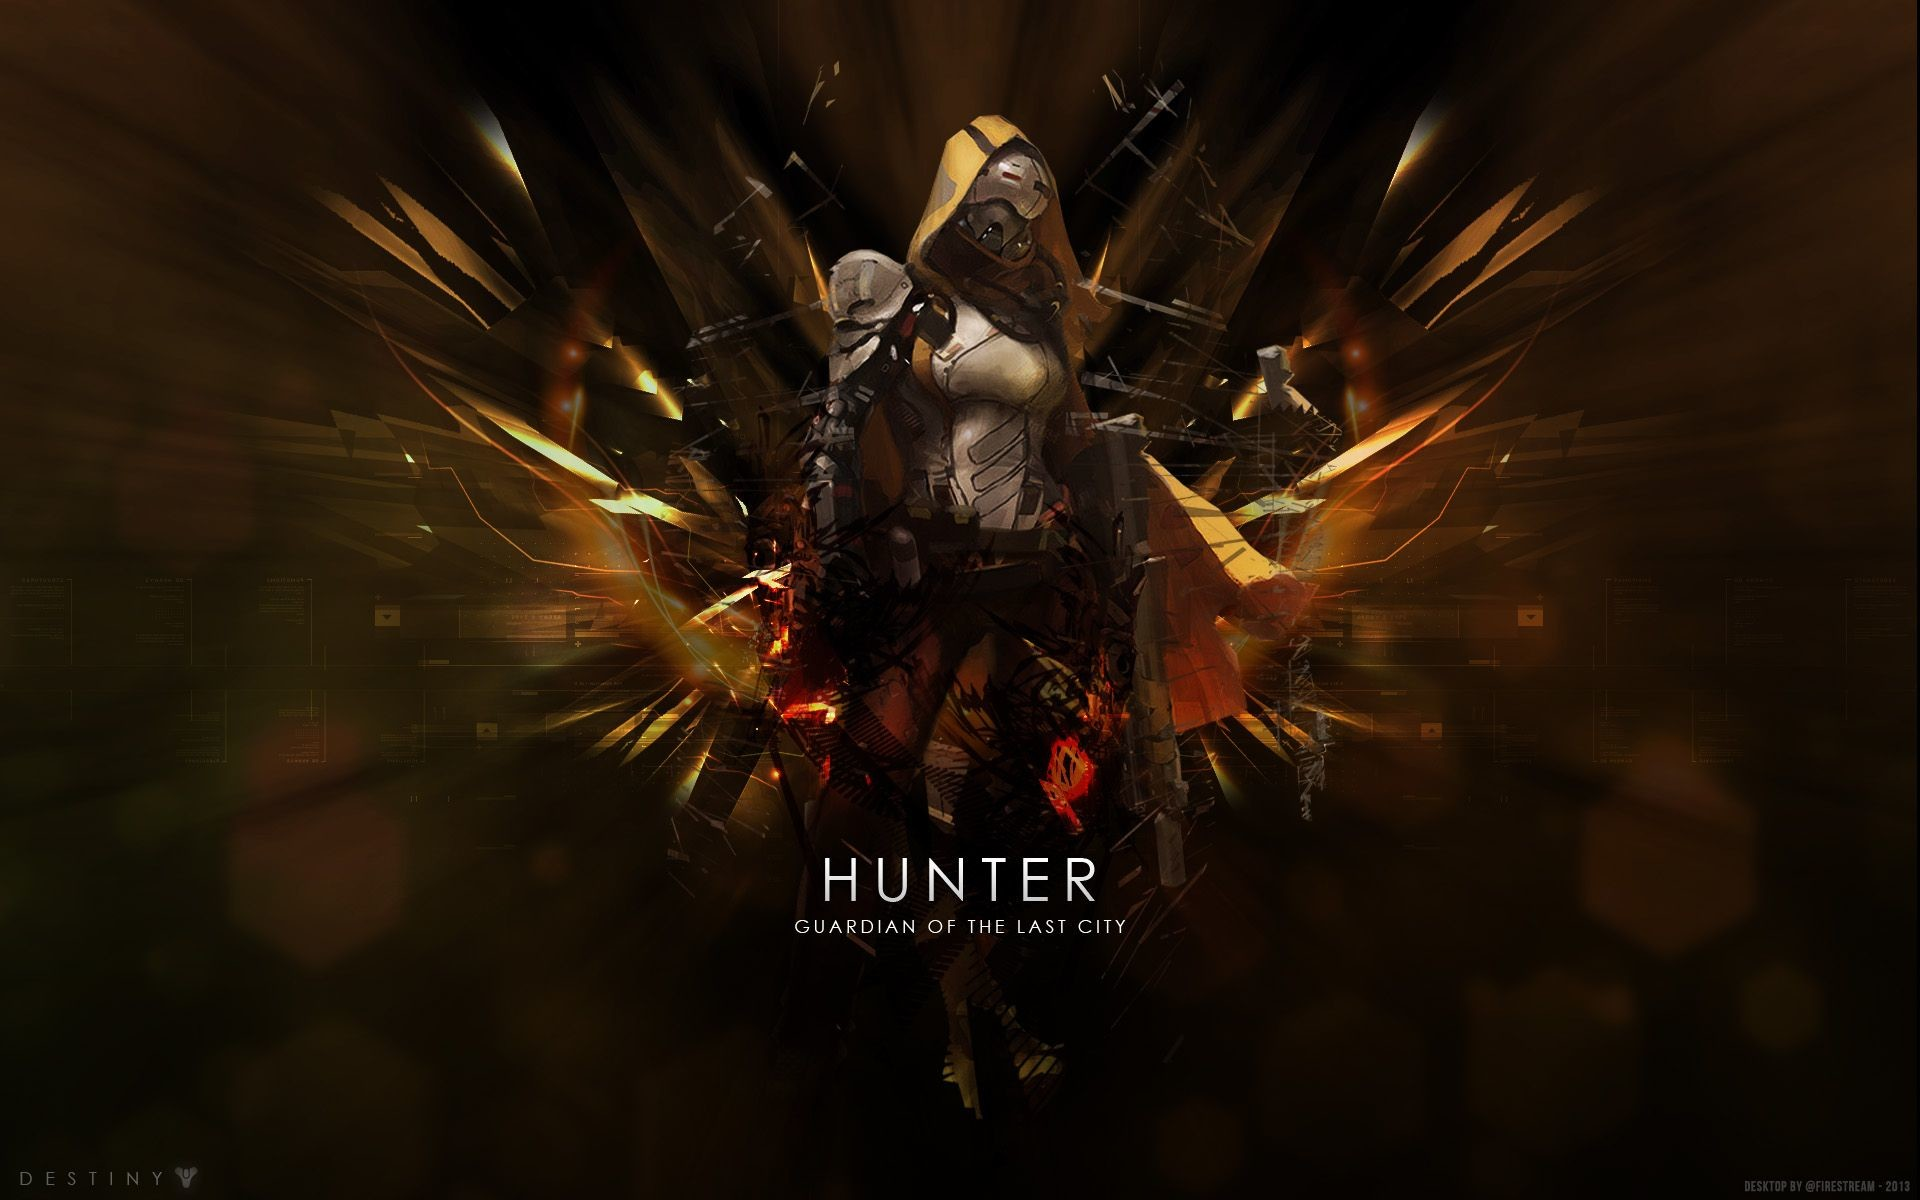 1920x1200 Destiny Hunter HD Wallpaper AWESOME THIS GAME IS FULLLLY AWESOME I AM NOT  KIDDING DID I MENTION THAT ITS AWESOME 'CAUSE IT IS AWESOME BTW IT IS  AWESOME